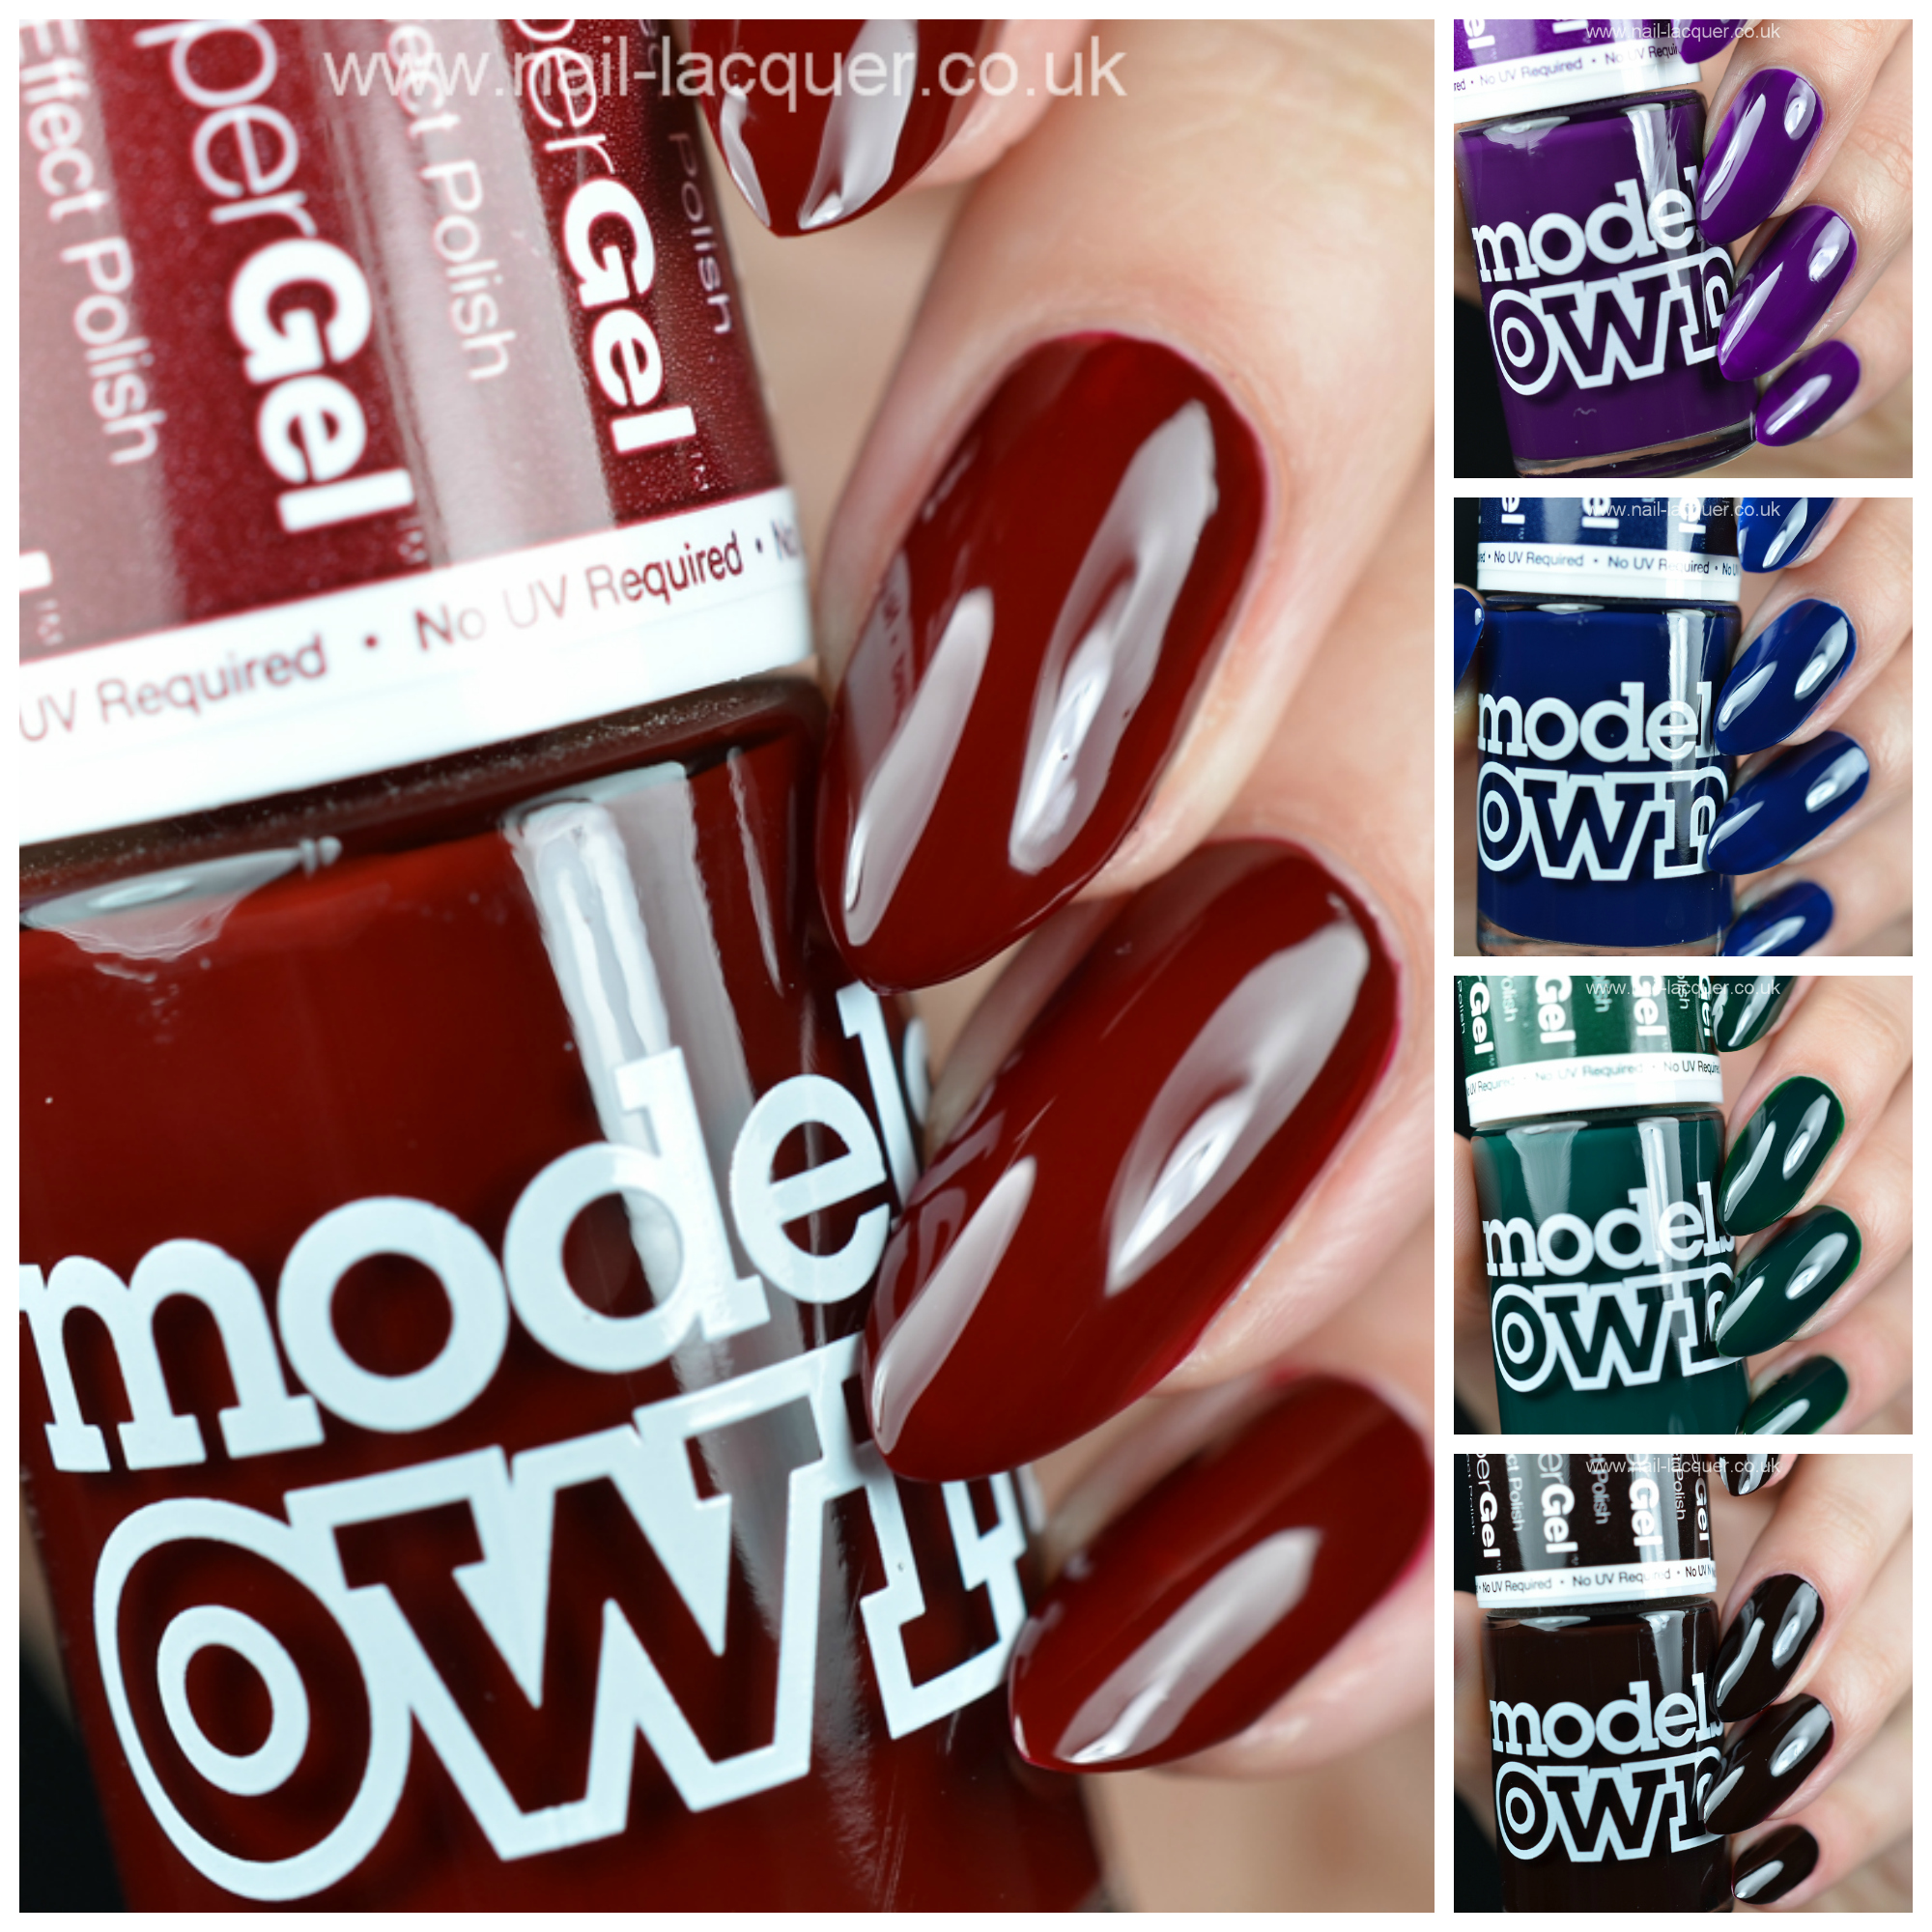 Models Own Autumn HyperGel swatches - Nail Lacquer UK